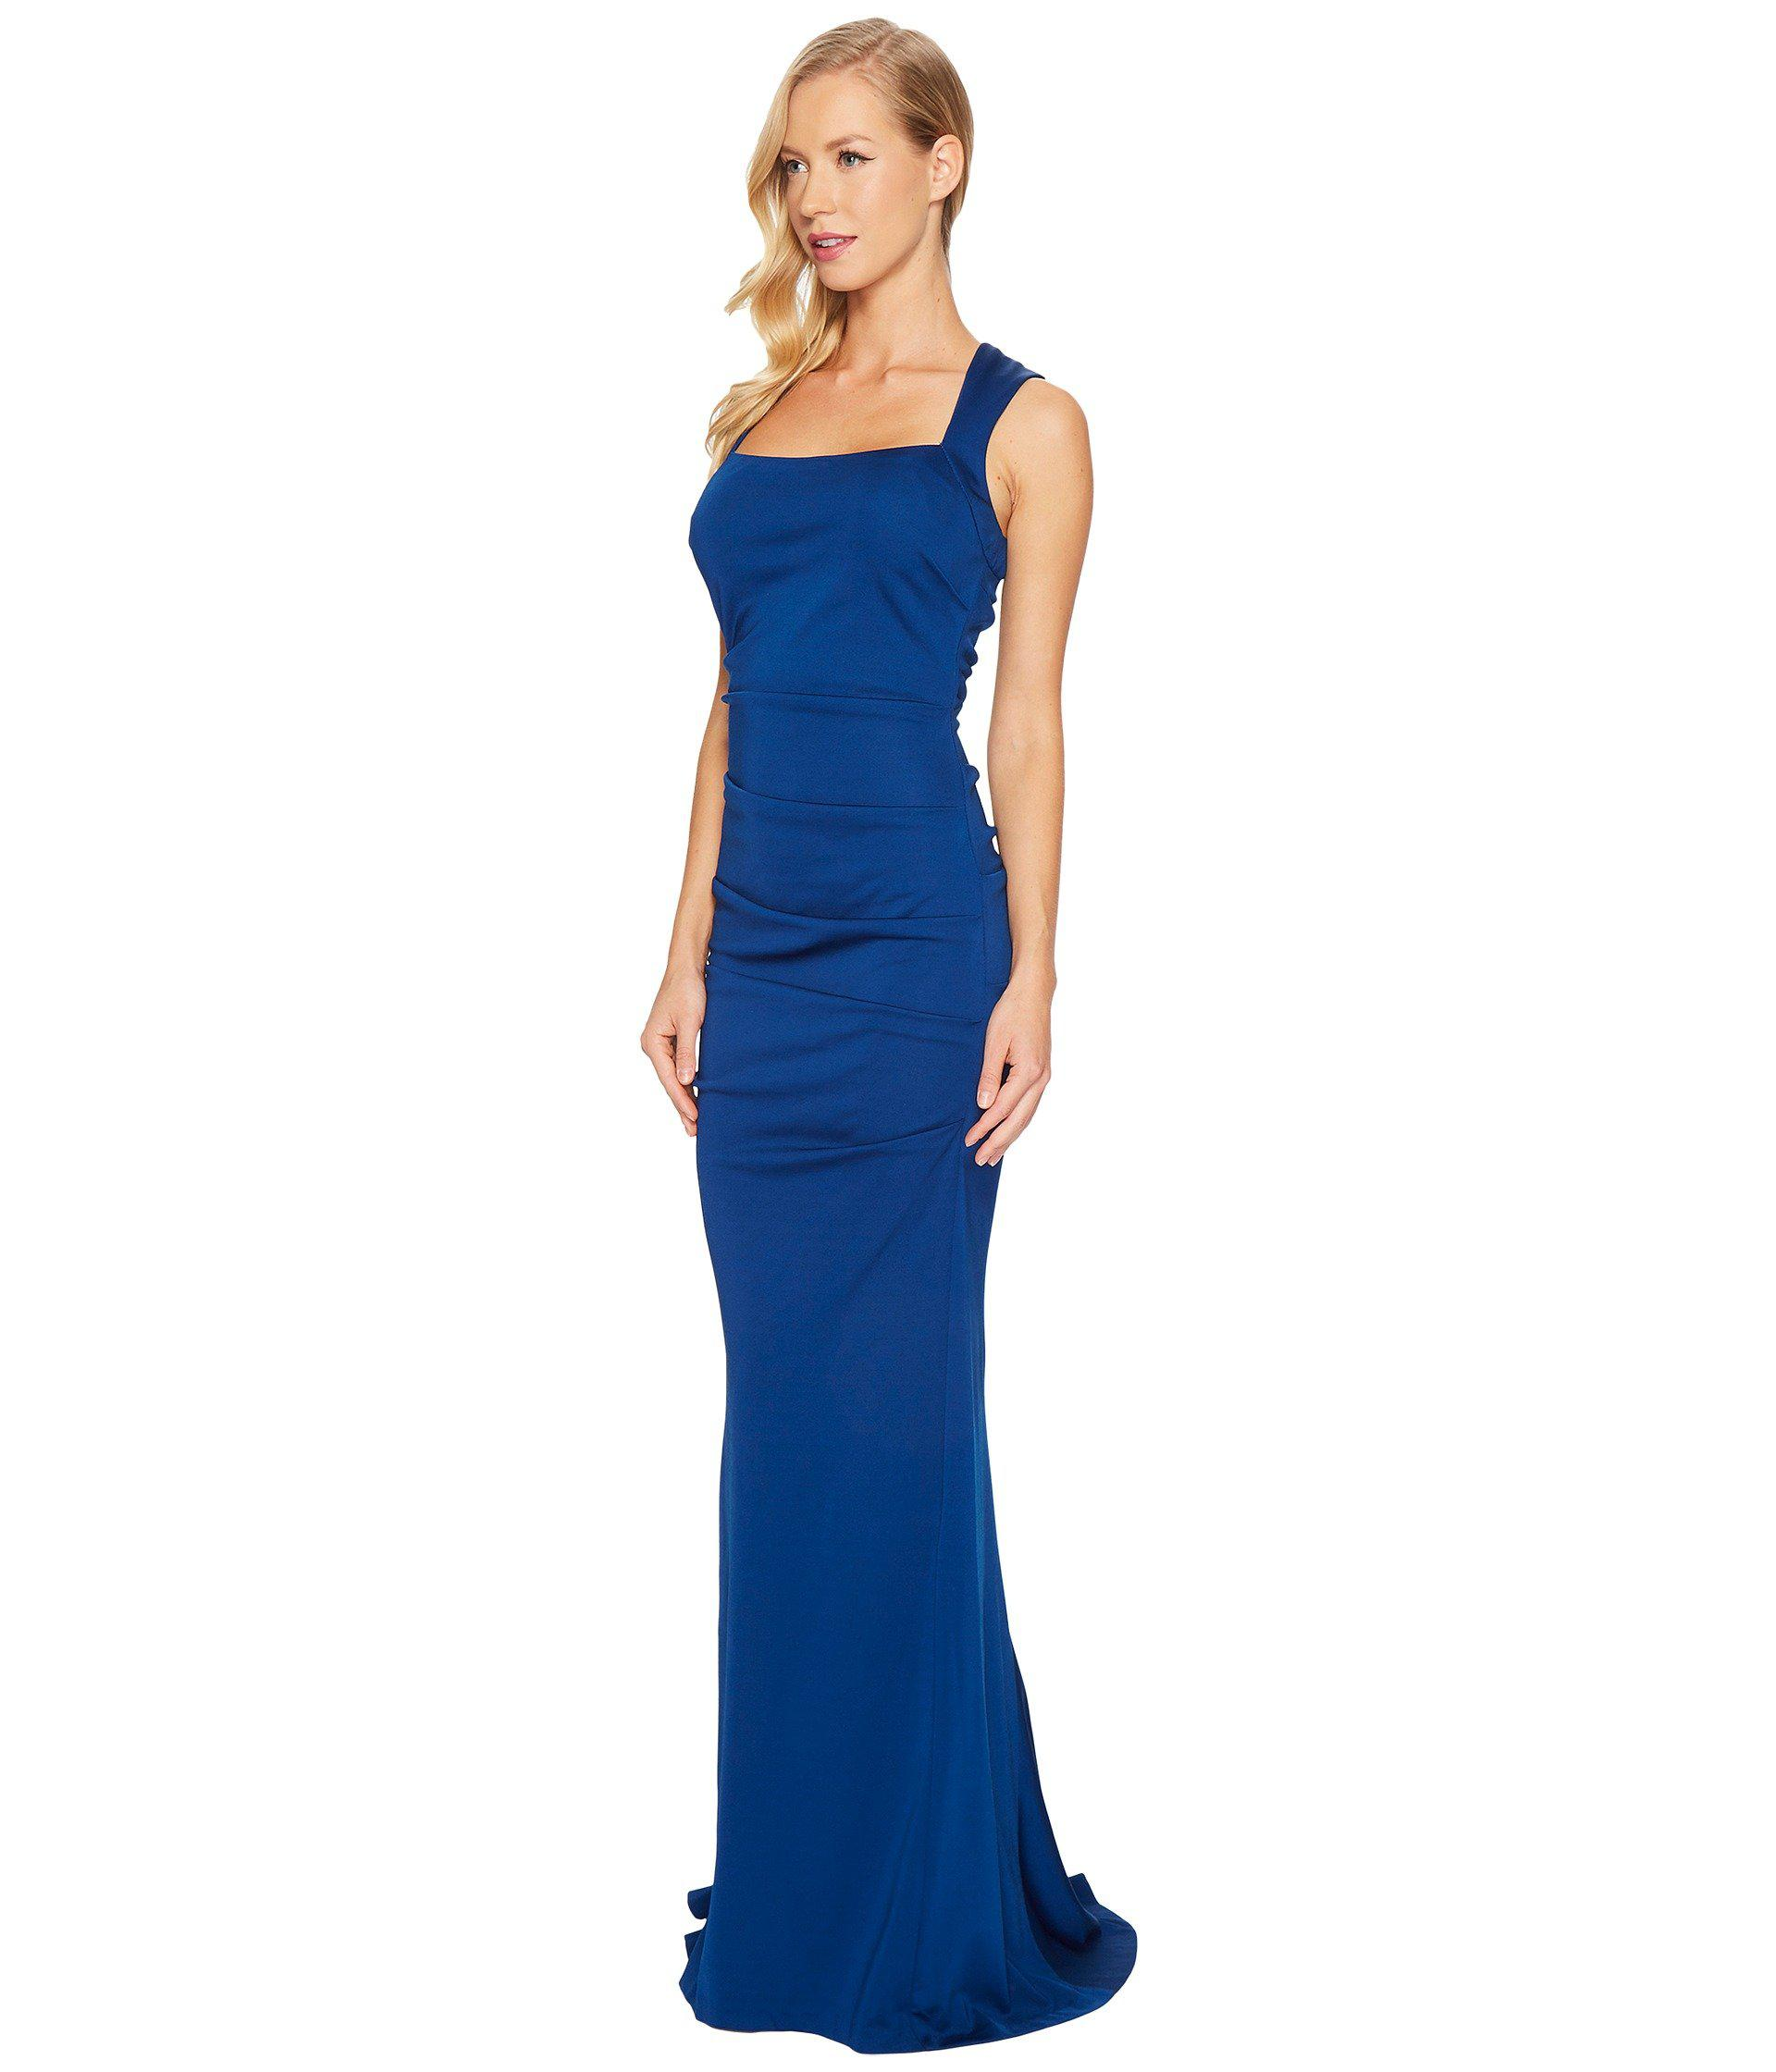 0513127e14ba4 Lyst - Adrianna Papell Sleeveless Ruched Lola Jersey Gown in Blue